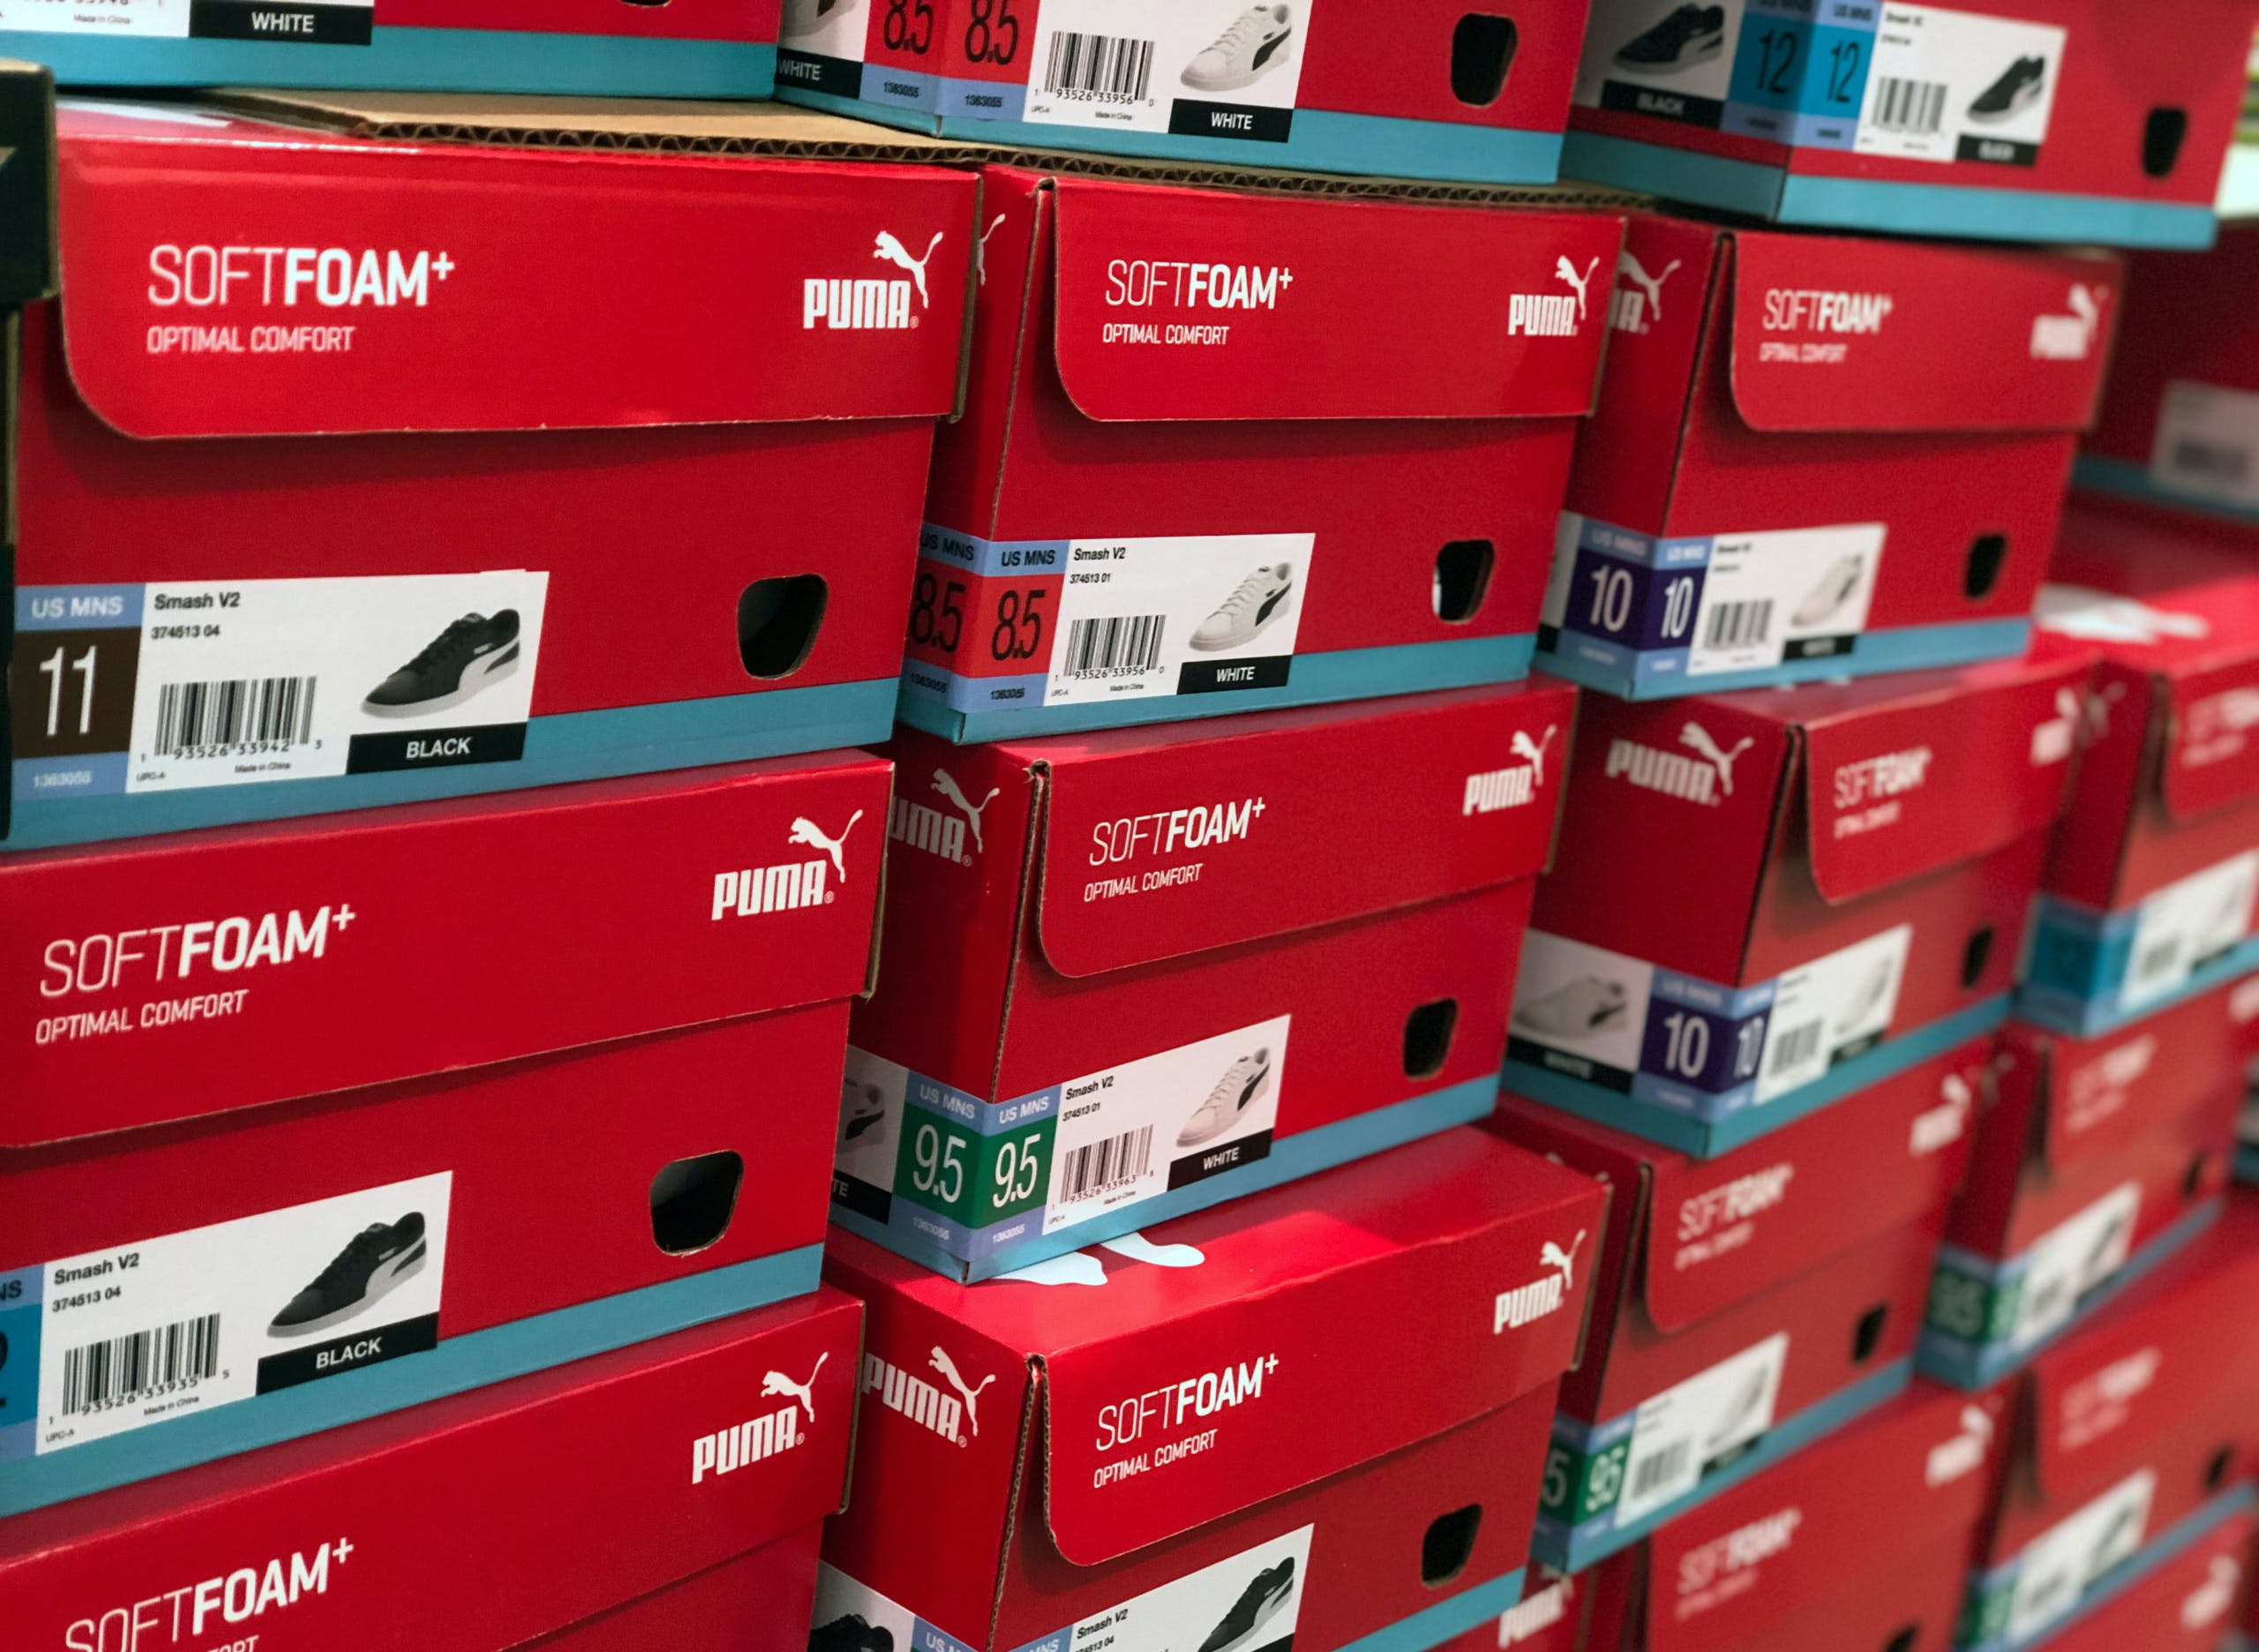 PUMA Leather Shoes, Only $23 at Costco